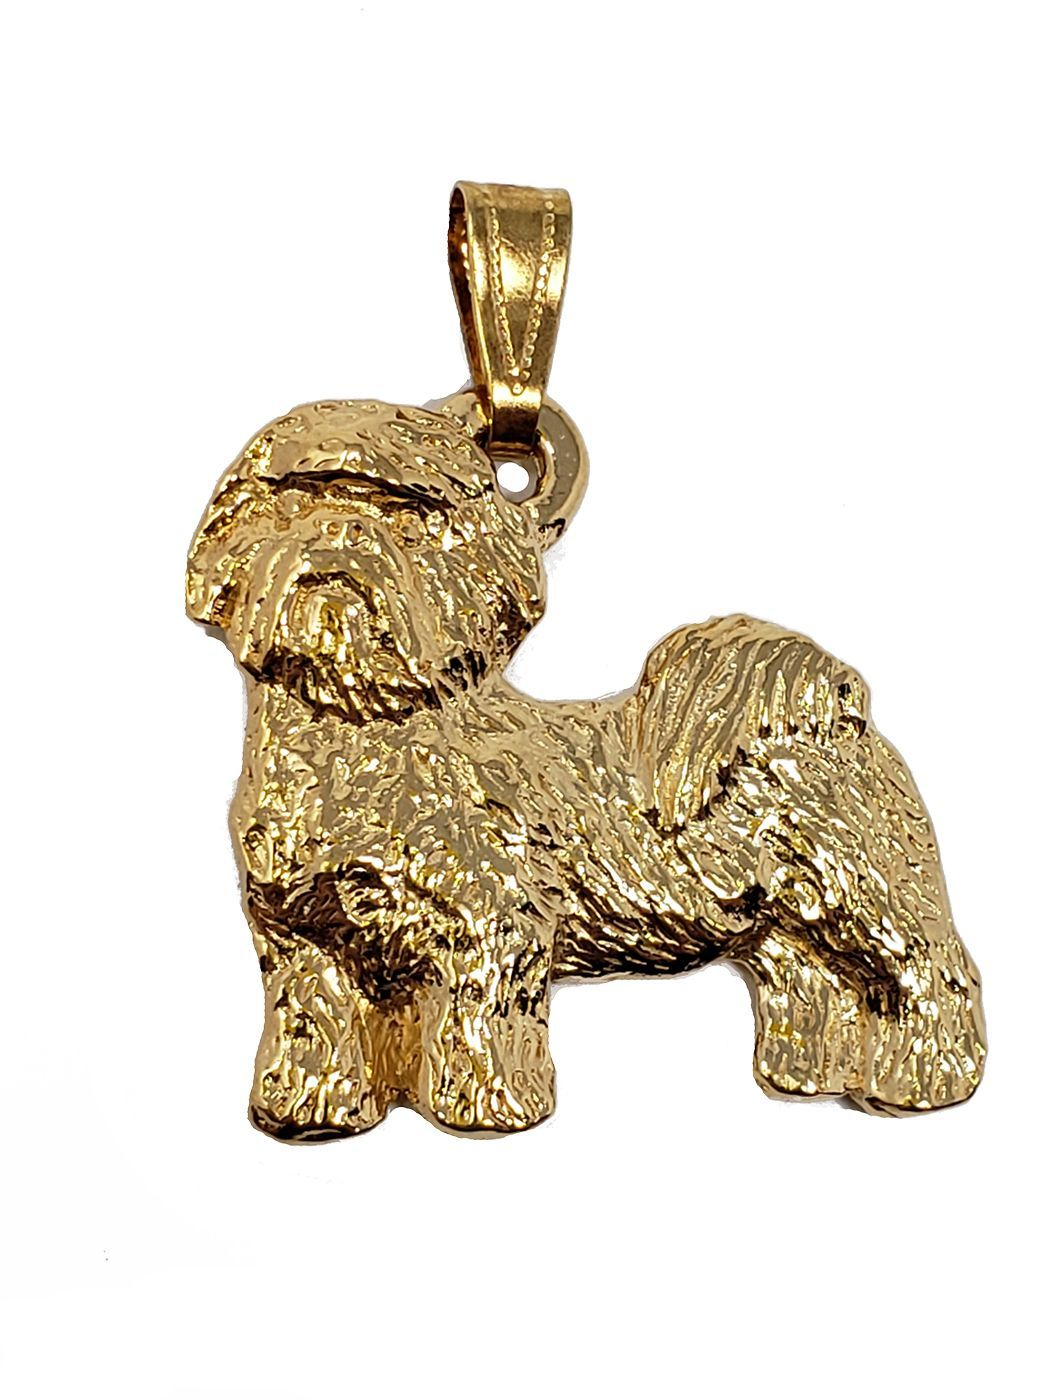 Shih Tzu 24K Gold Plated Pendant Puppy Cut